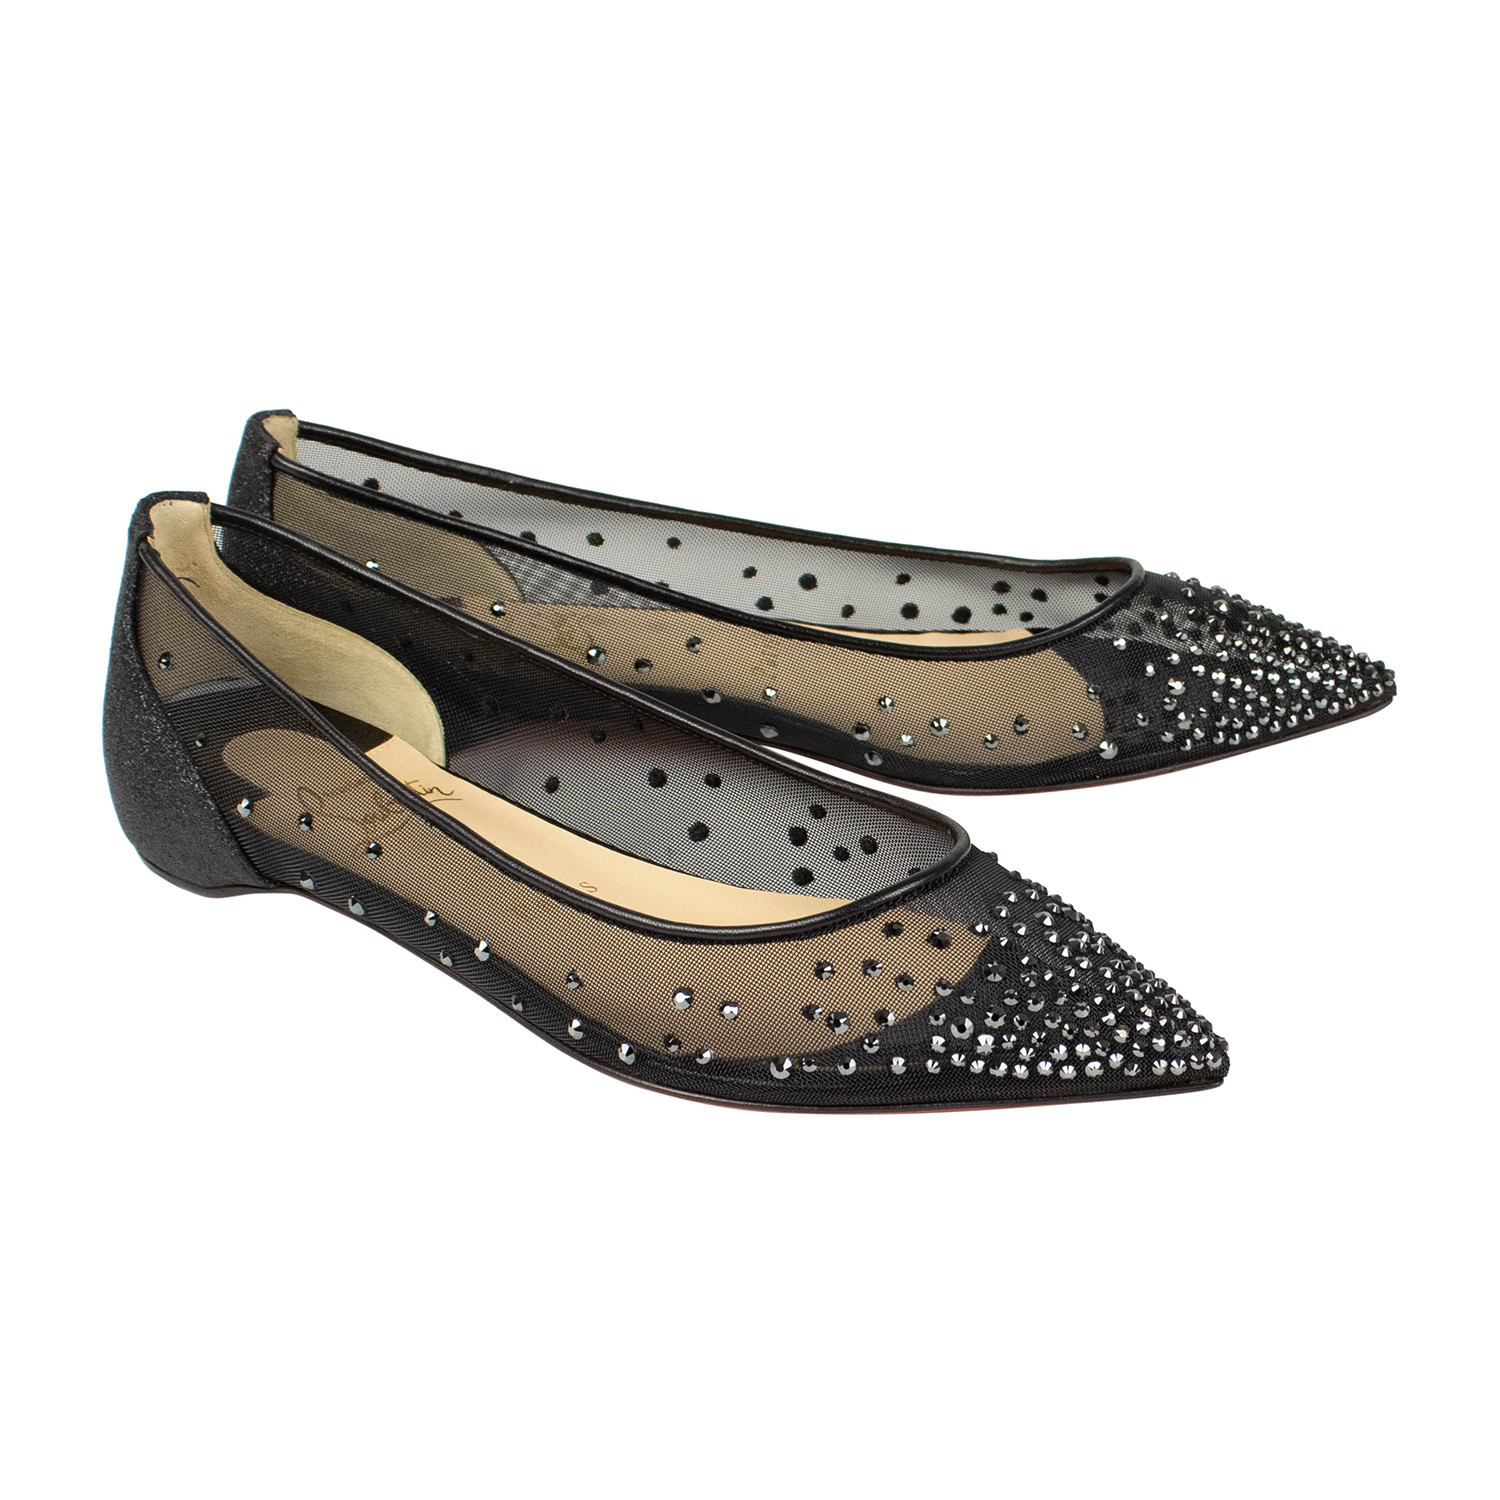 fd1fb51c1d0 Women's // Follies Strass Flats // Black (Euro: 35.5) - Christian ...